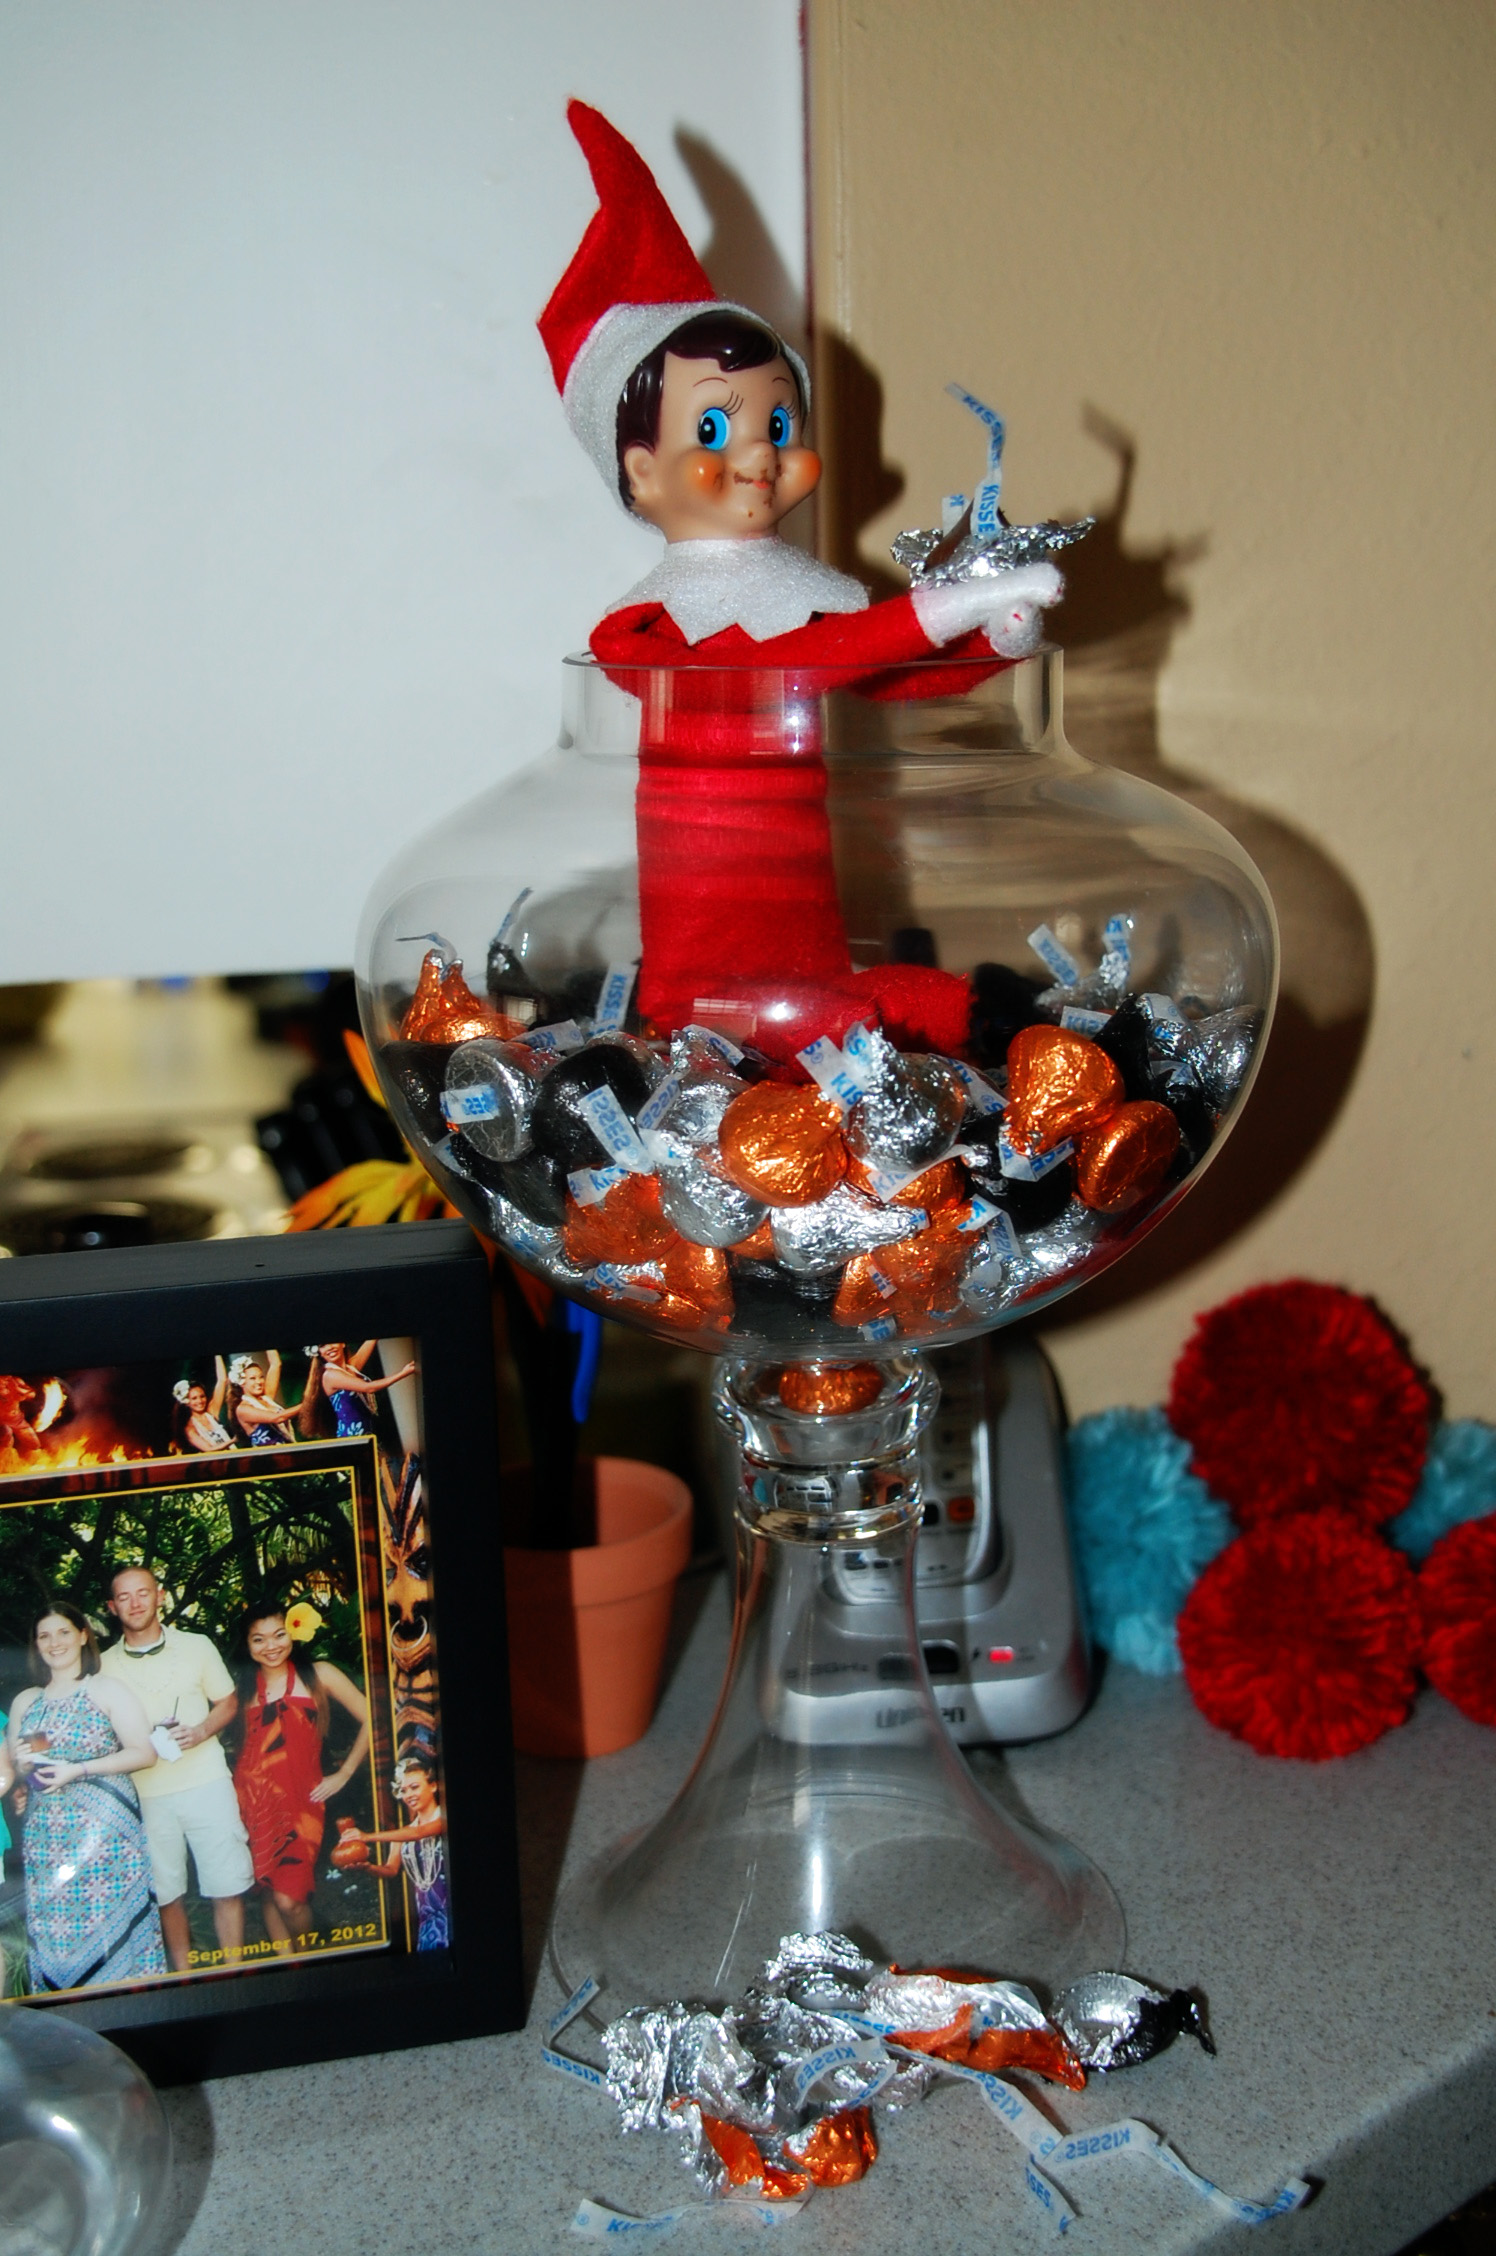 Elf on the shelf magic dust with free printable for Elf on the shelf chocolate kiss